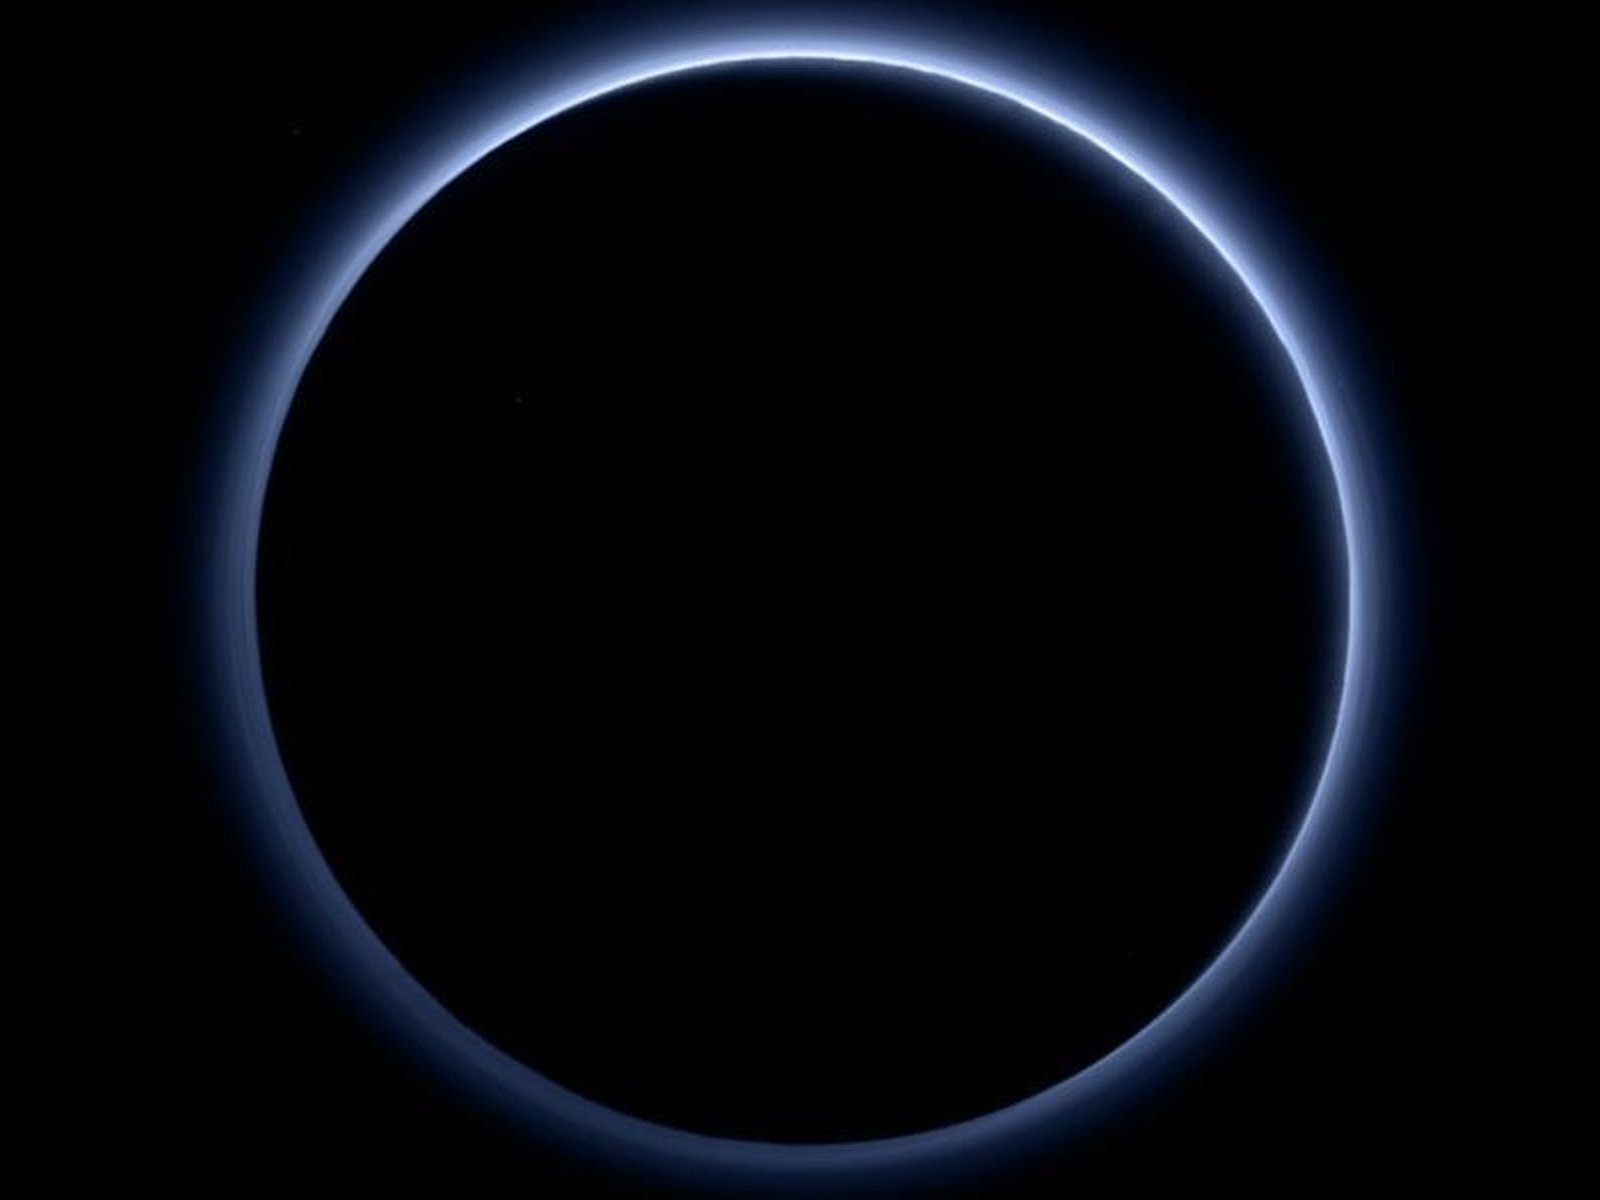 Pluto's Glowing Halo | Space Wallpaper